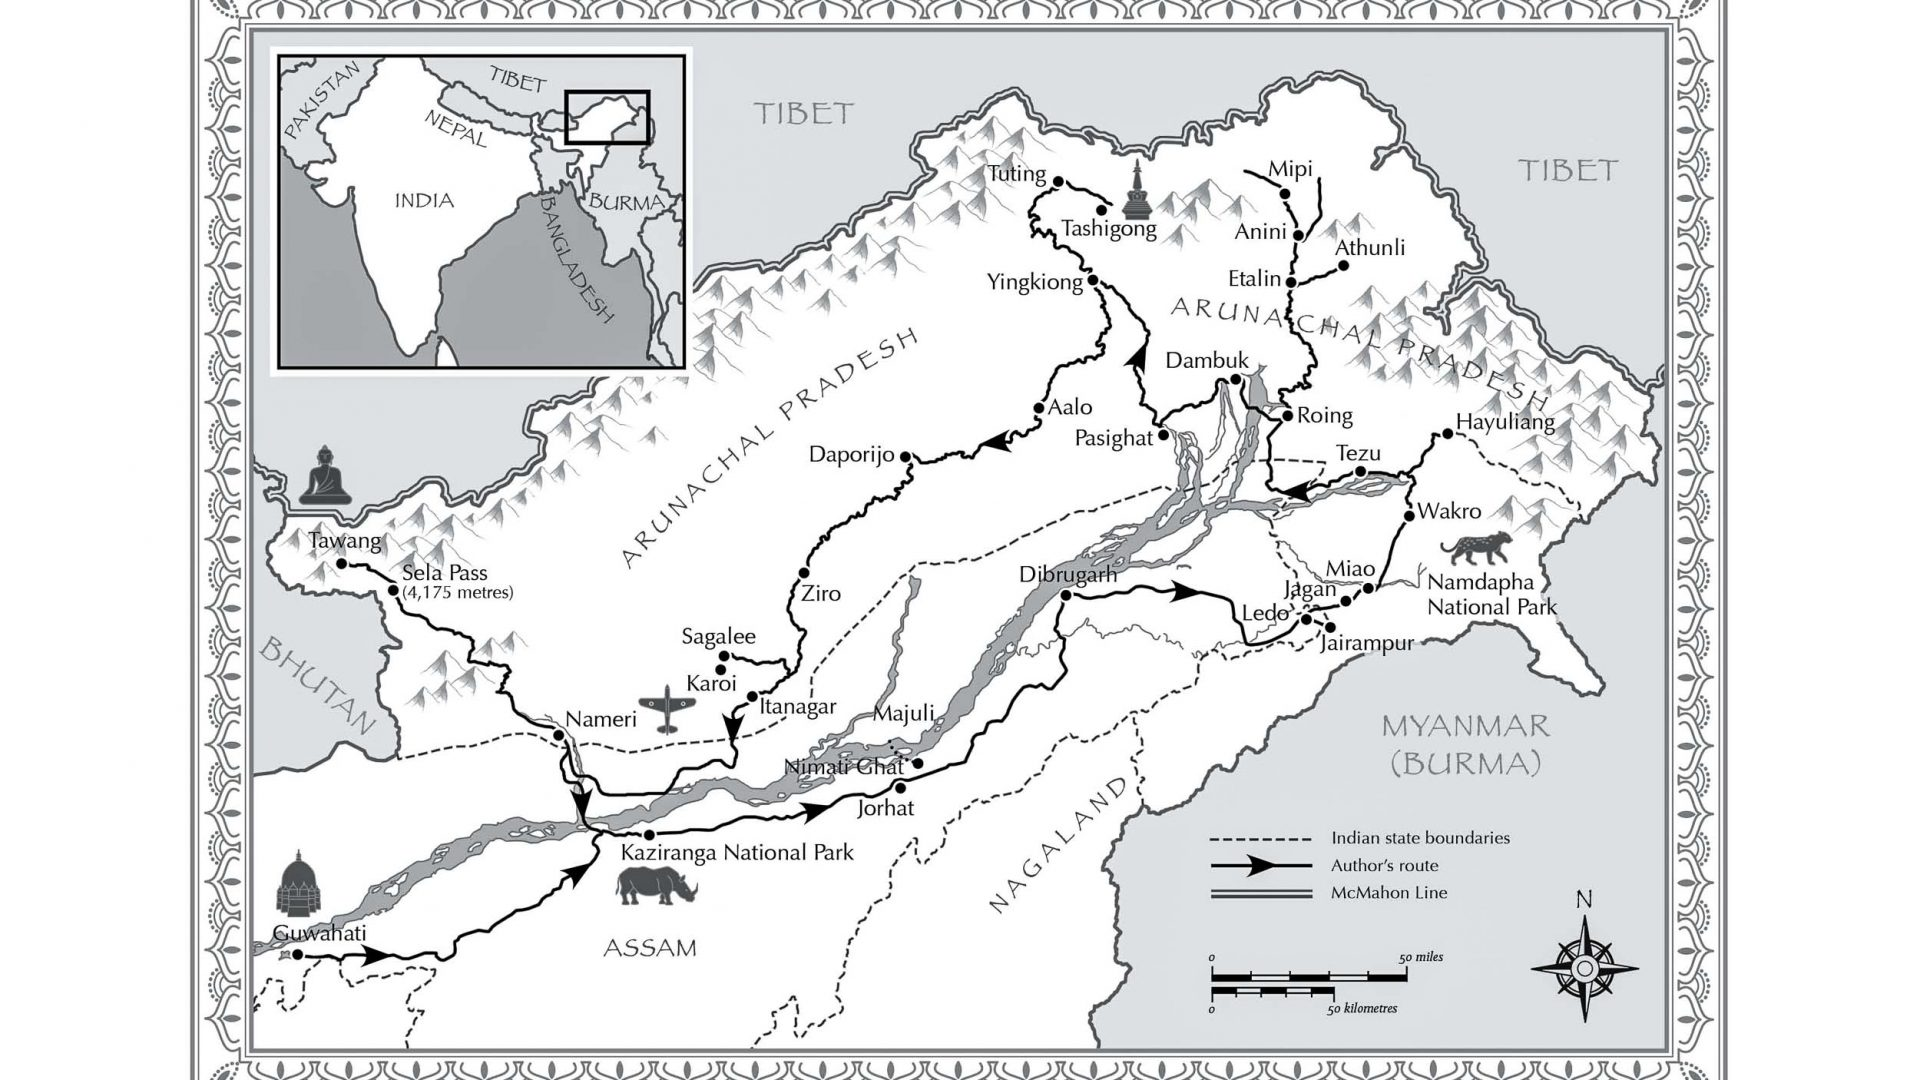 A map shows the region of Arunachal Pradesh in northeastern India.